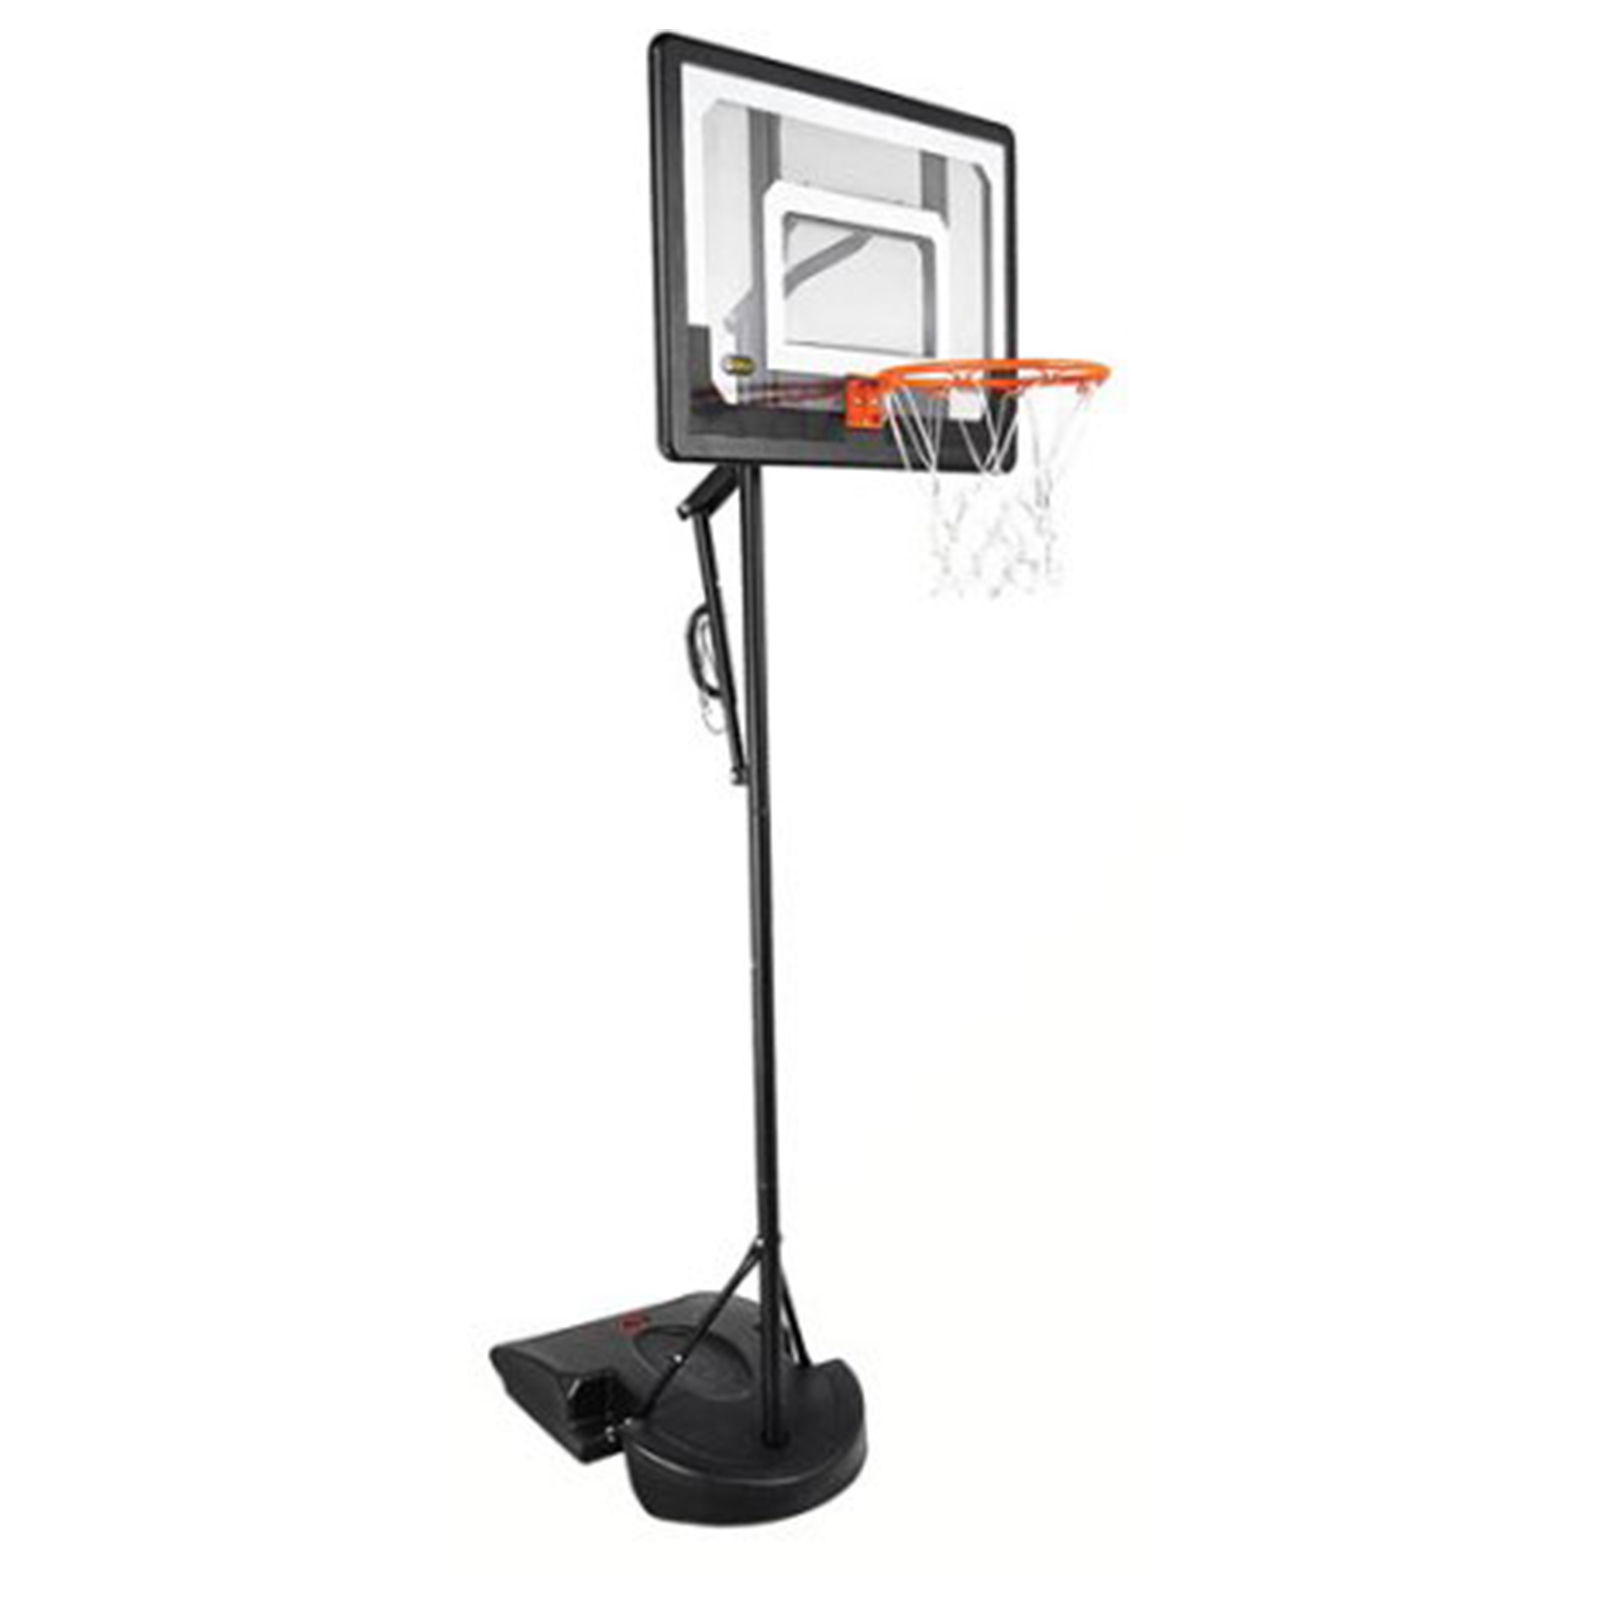 Portable Basketball System Adjustable Pro Outdoor Hoop Rim